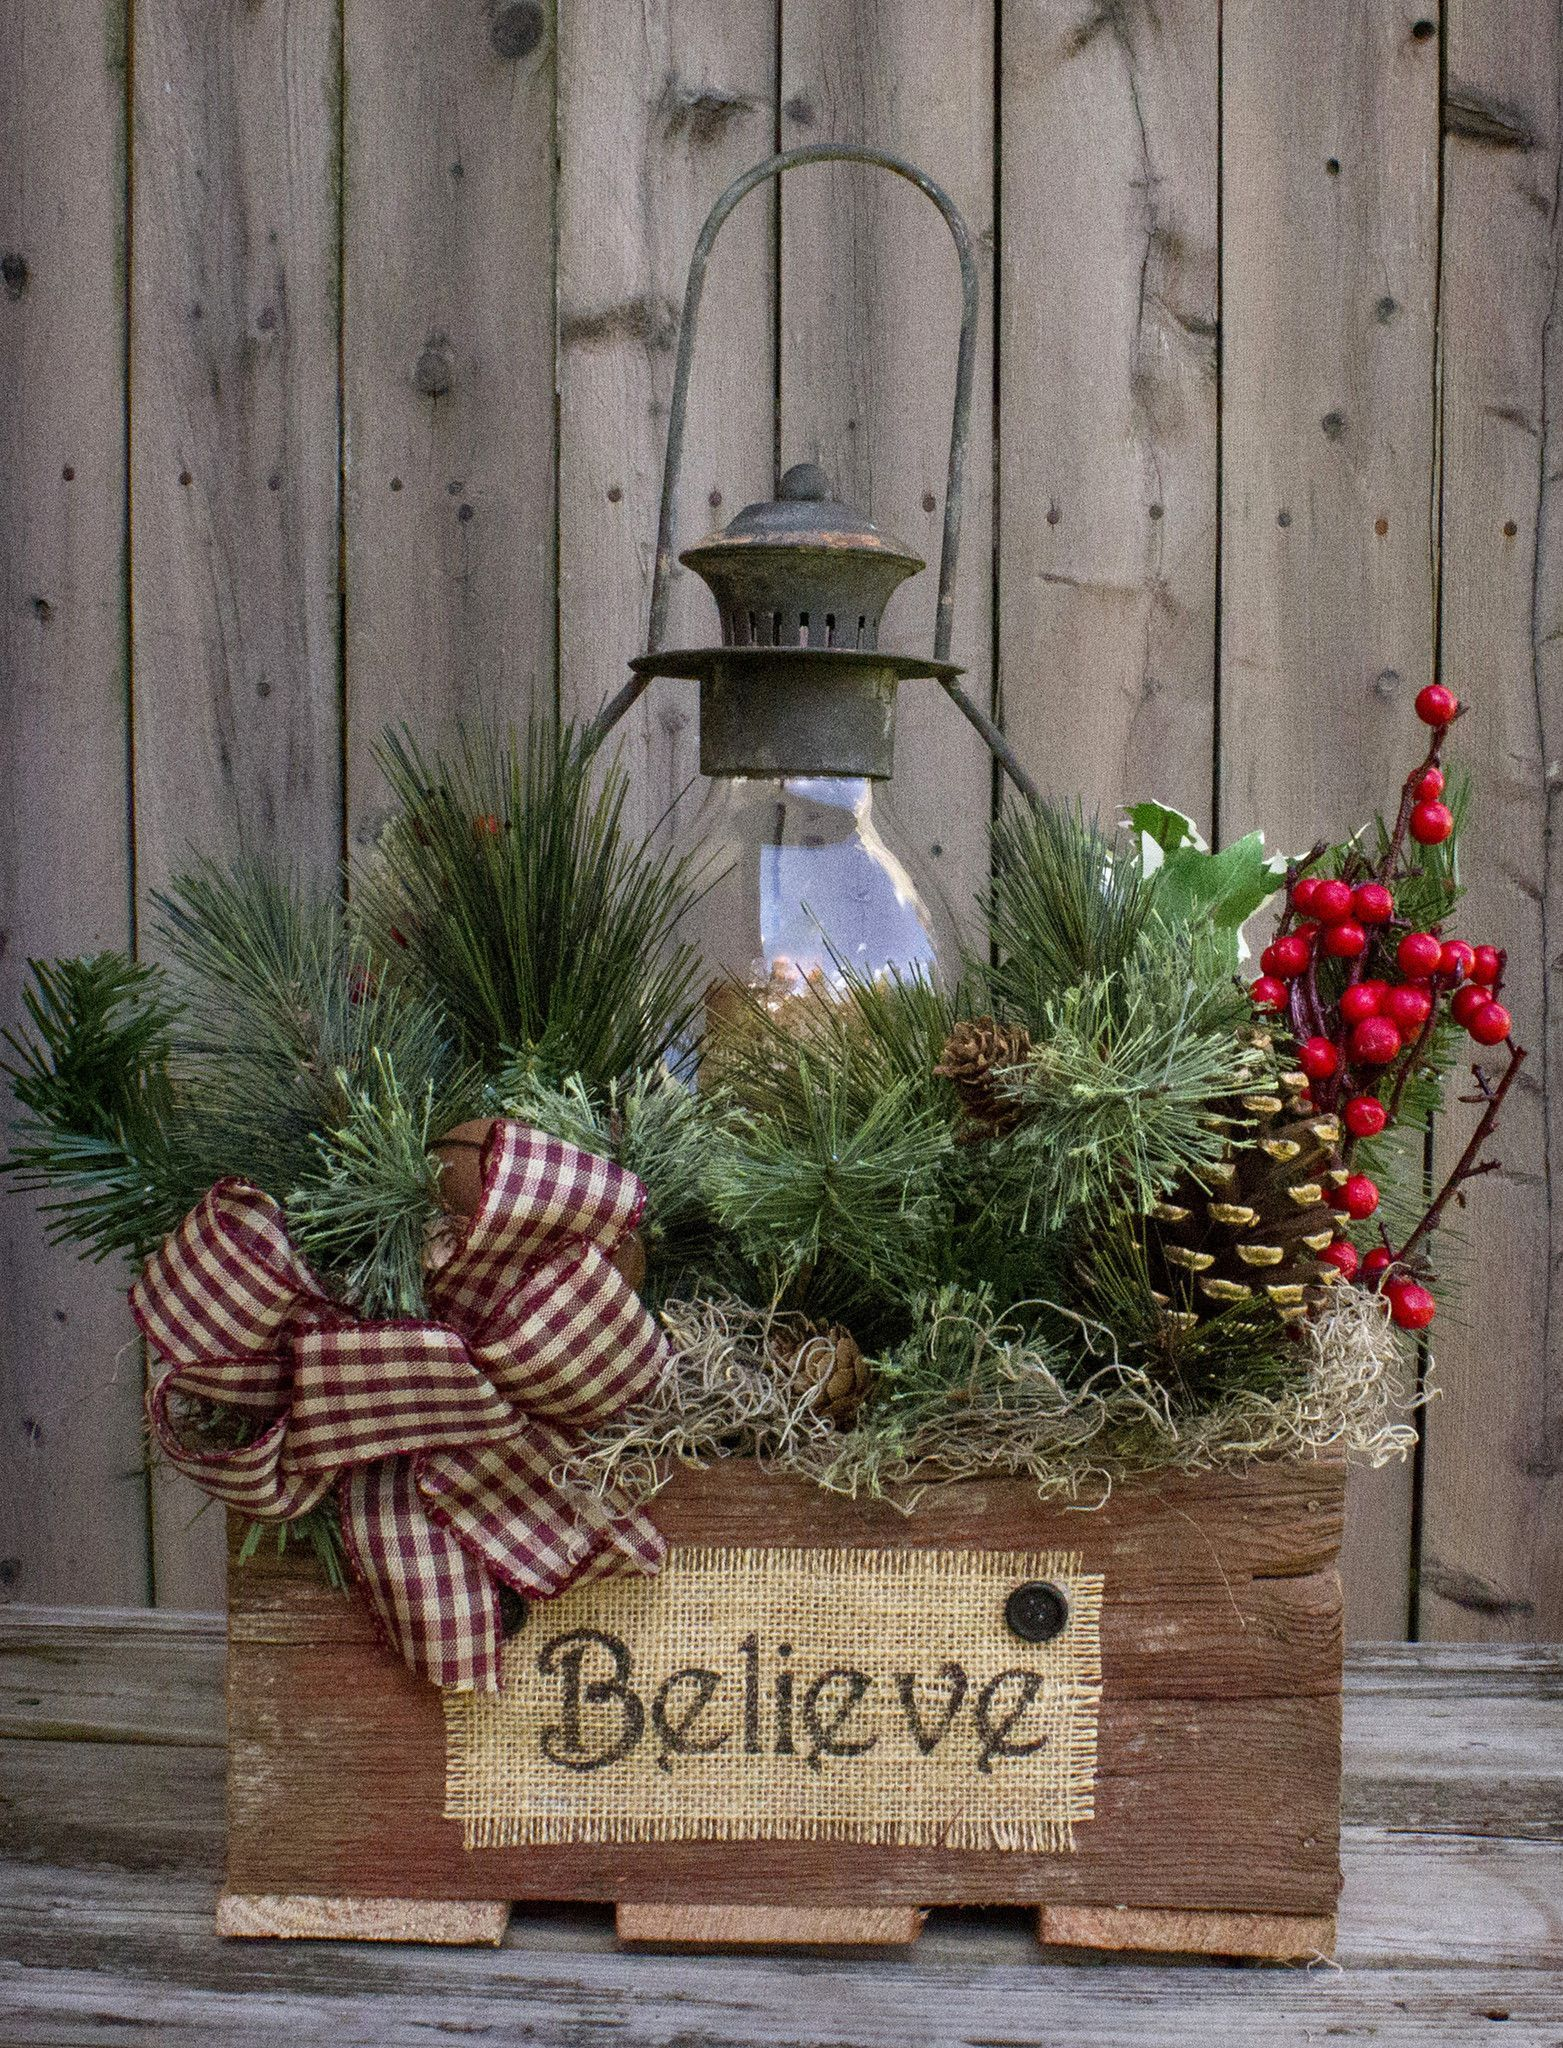 Lanterne De Noel Exterieur Believe Box Lantern Arrangement Christmas Crafts